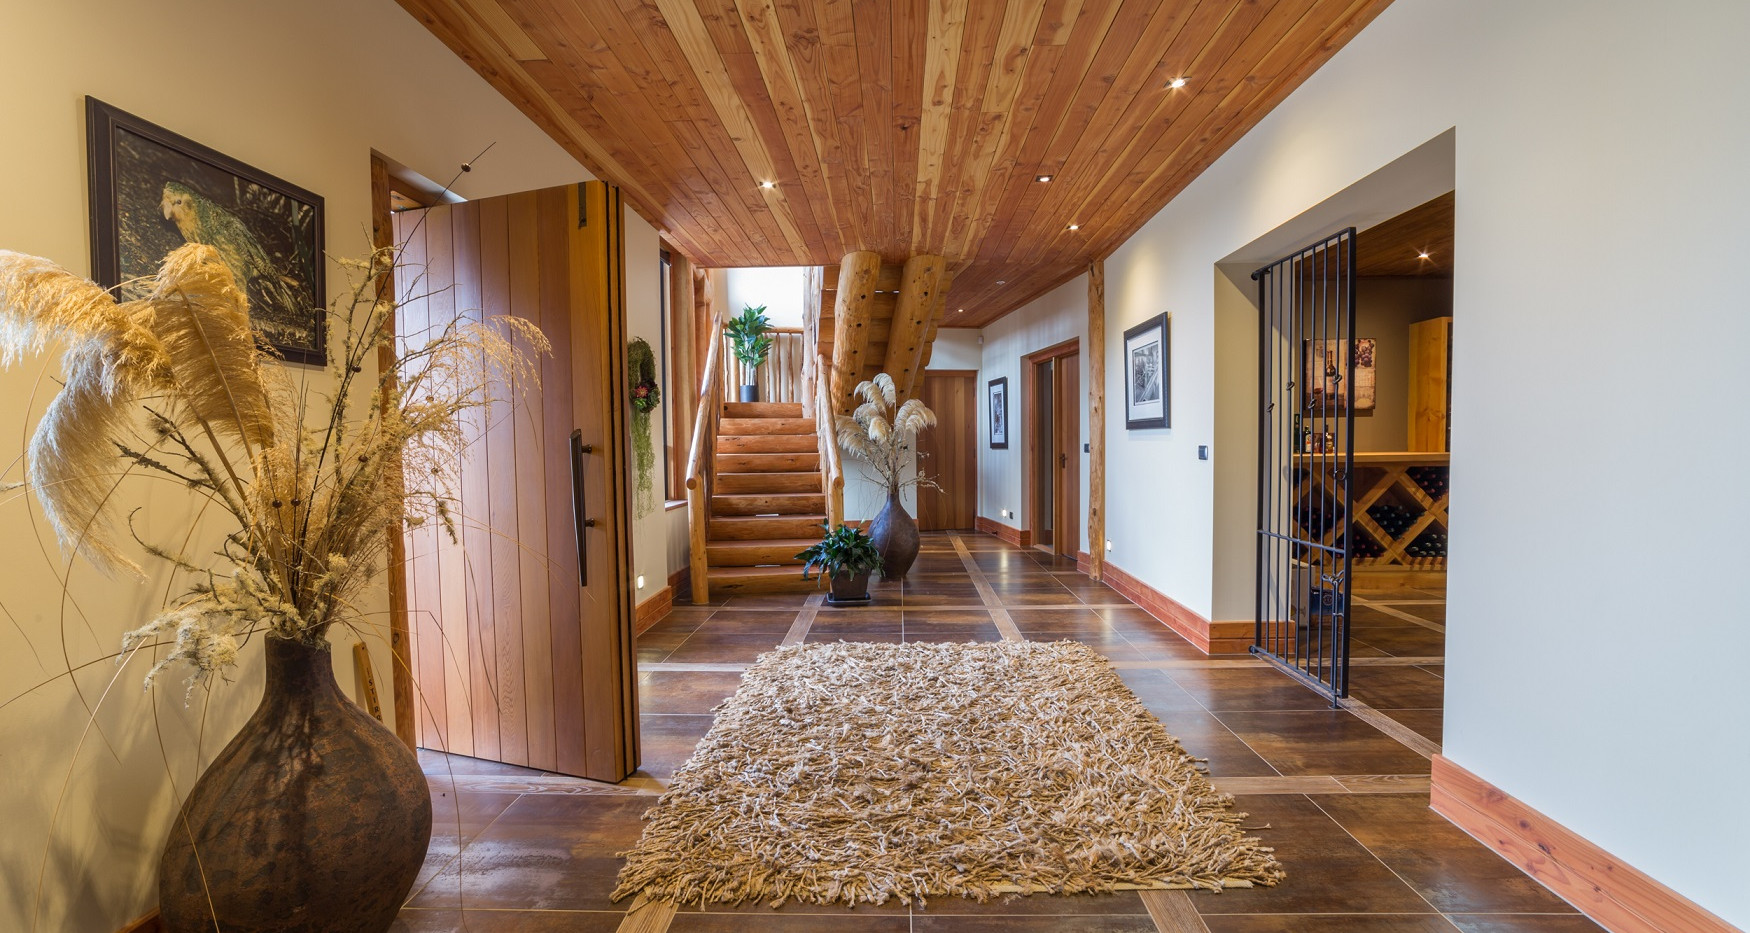 Fiordland Lodge entry and wine cellar